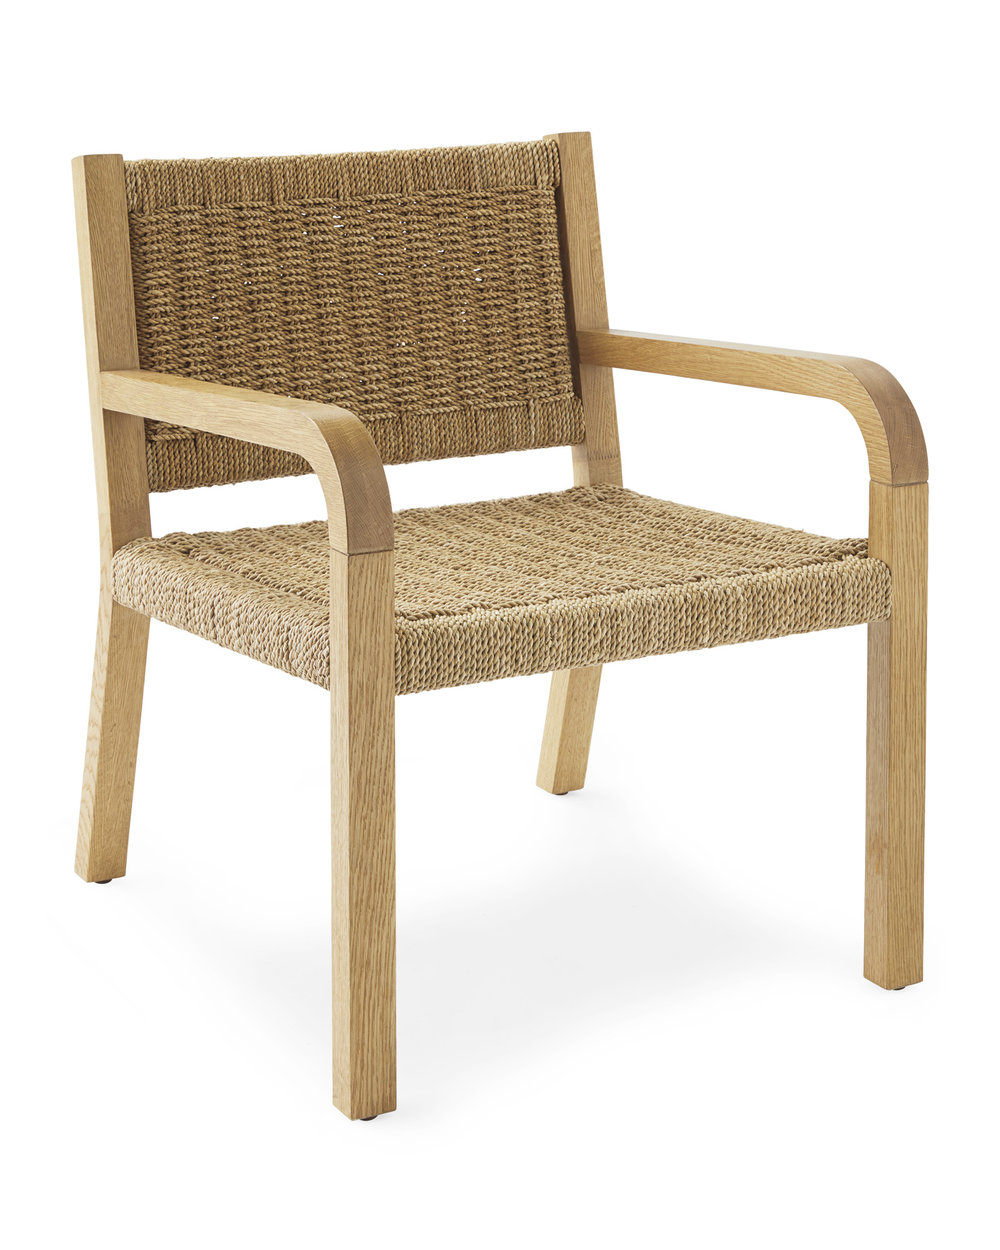 Furn_Rope_Accent_Chair_Angle_MV_Crop_SH.jpg